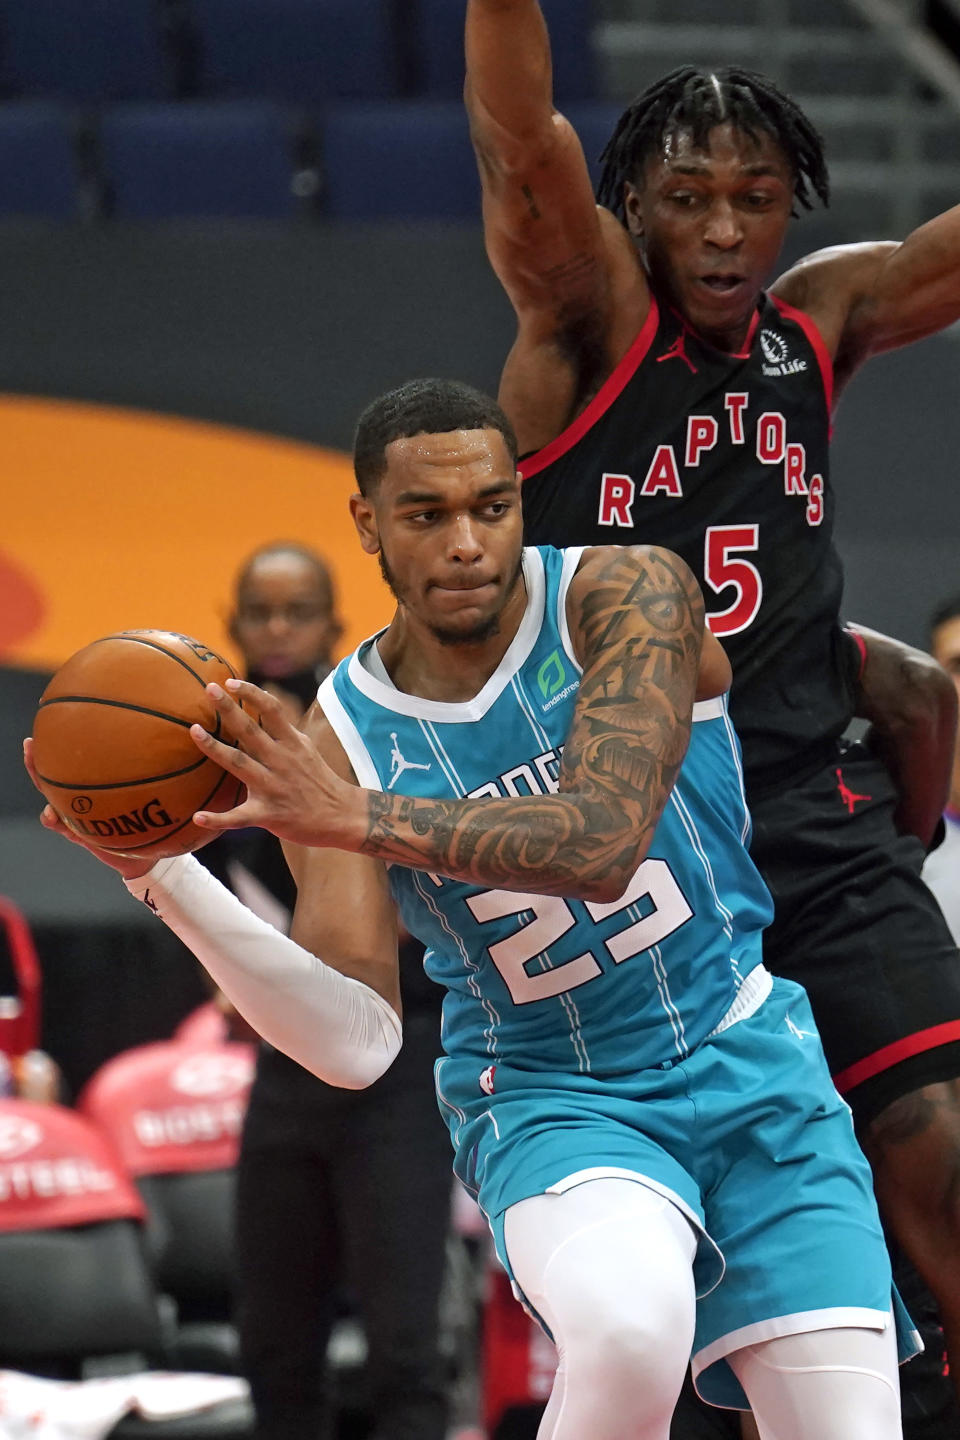 Charlotte Hornets forward P.J. Washington (25) makes a pass in front of Toronto Raptors forward Stanley Johnson (5) during the first half of an NBA basketball game Saturday, Jan. 16, 2021, in Tampa, Fla. (AP Photo/Chris O'Meara)